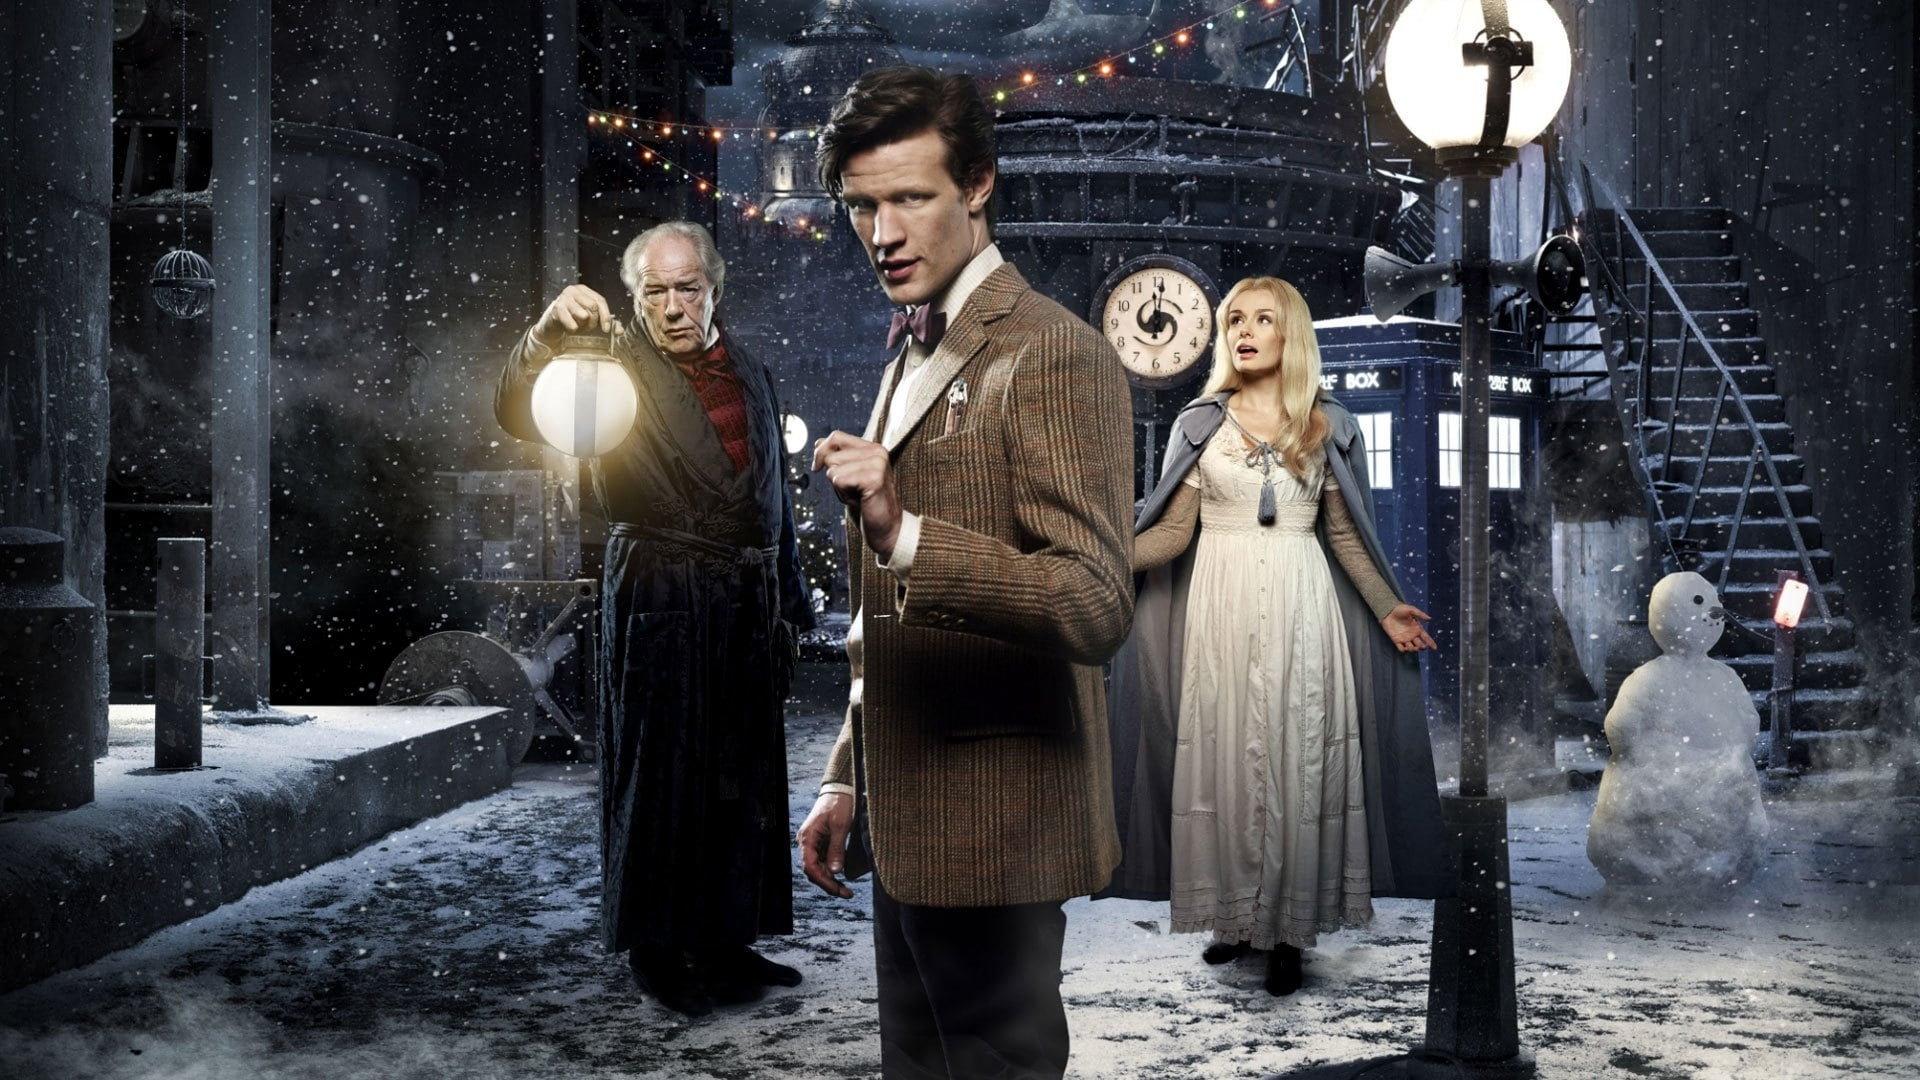 Doctor Who - Season 0 Episode 34 : A Christmas Carol